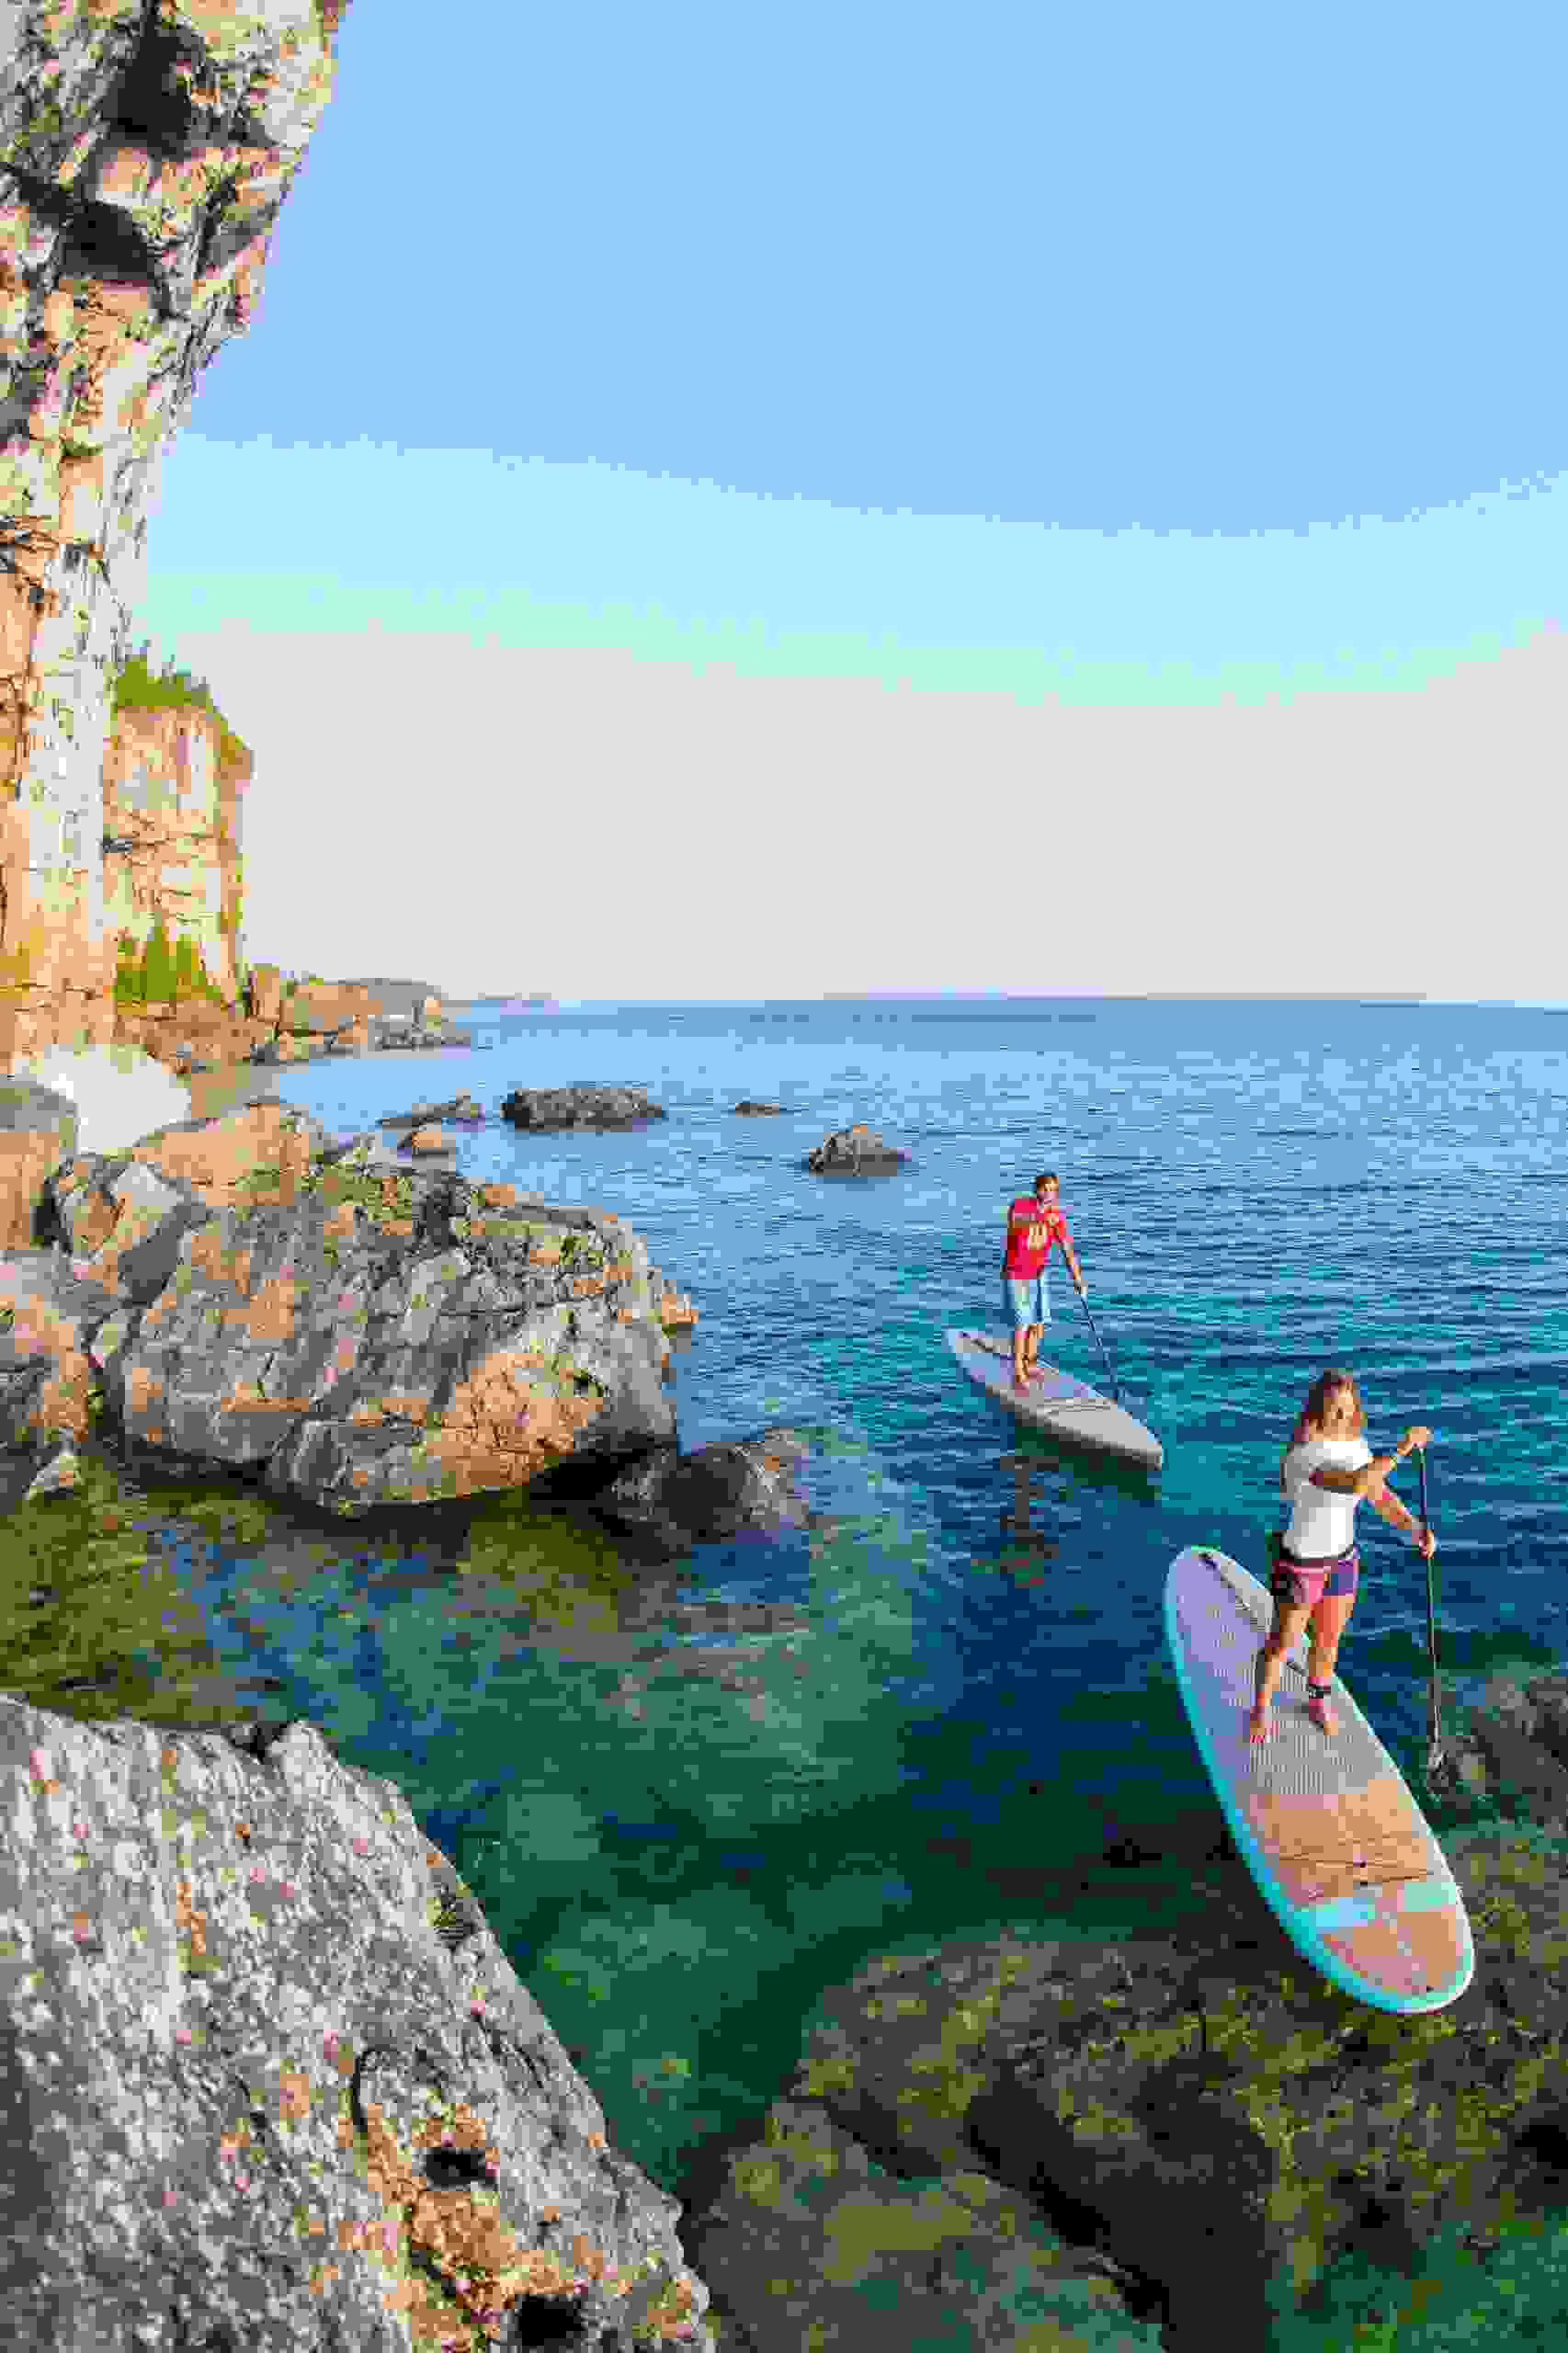 A couple paddle boarding next to high cliffs